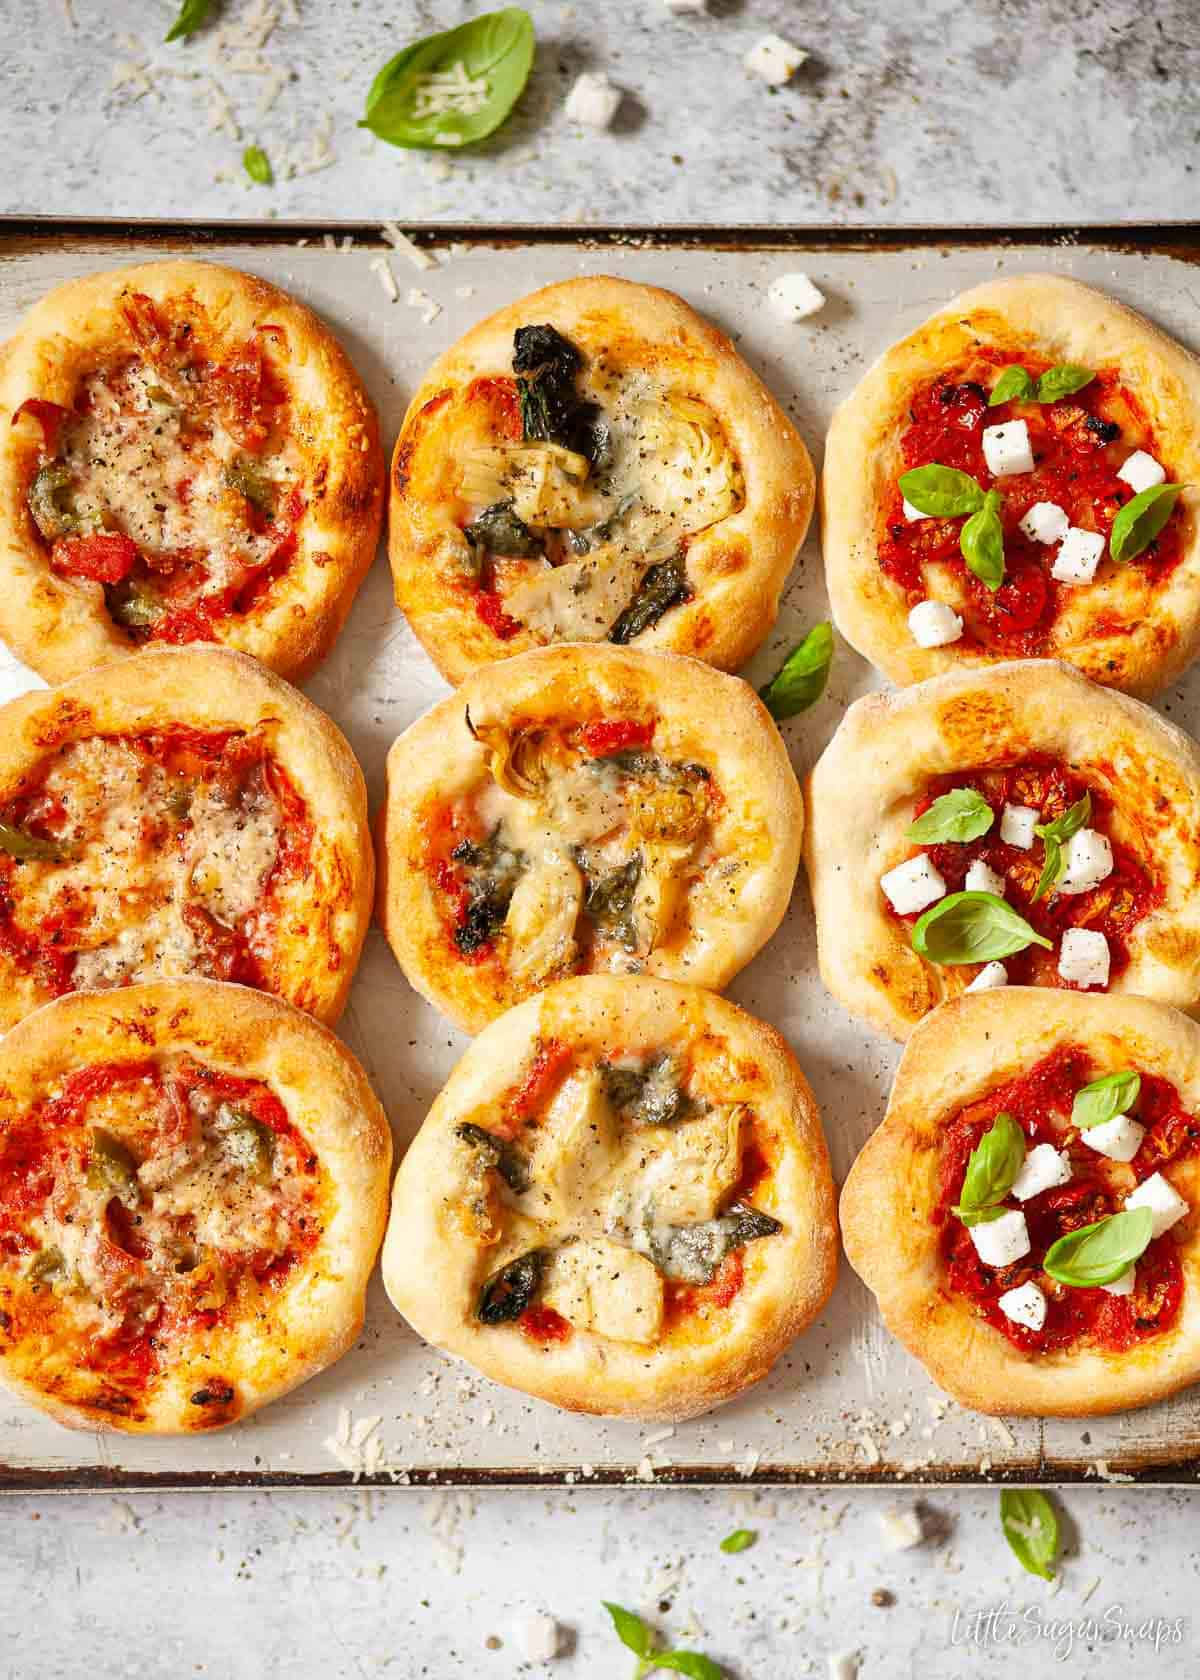 Assorted pizzette on a baking tray